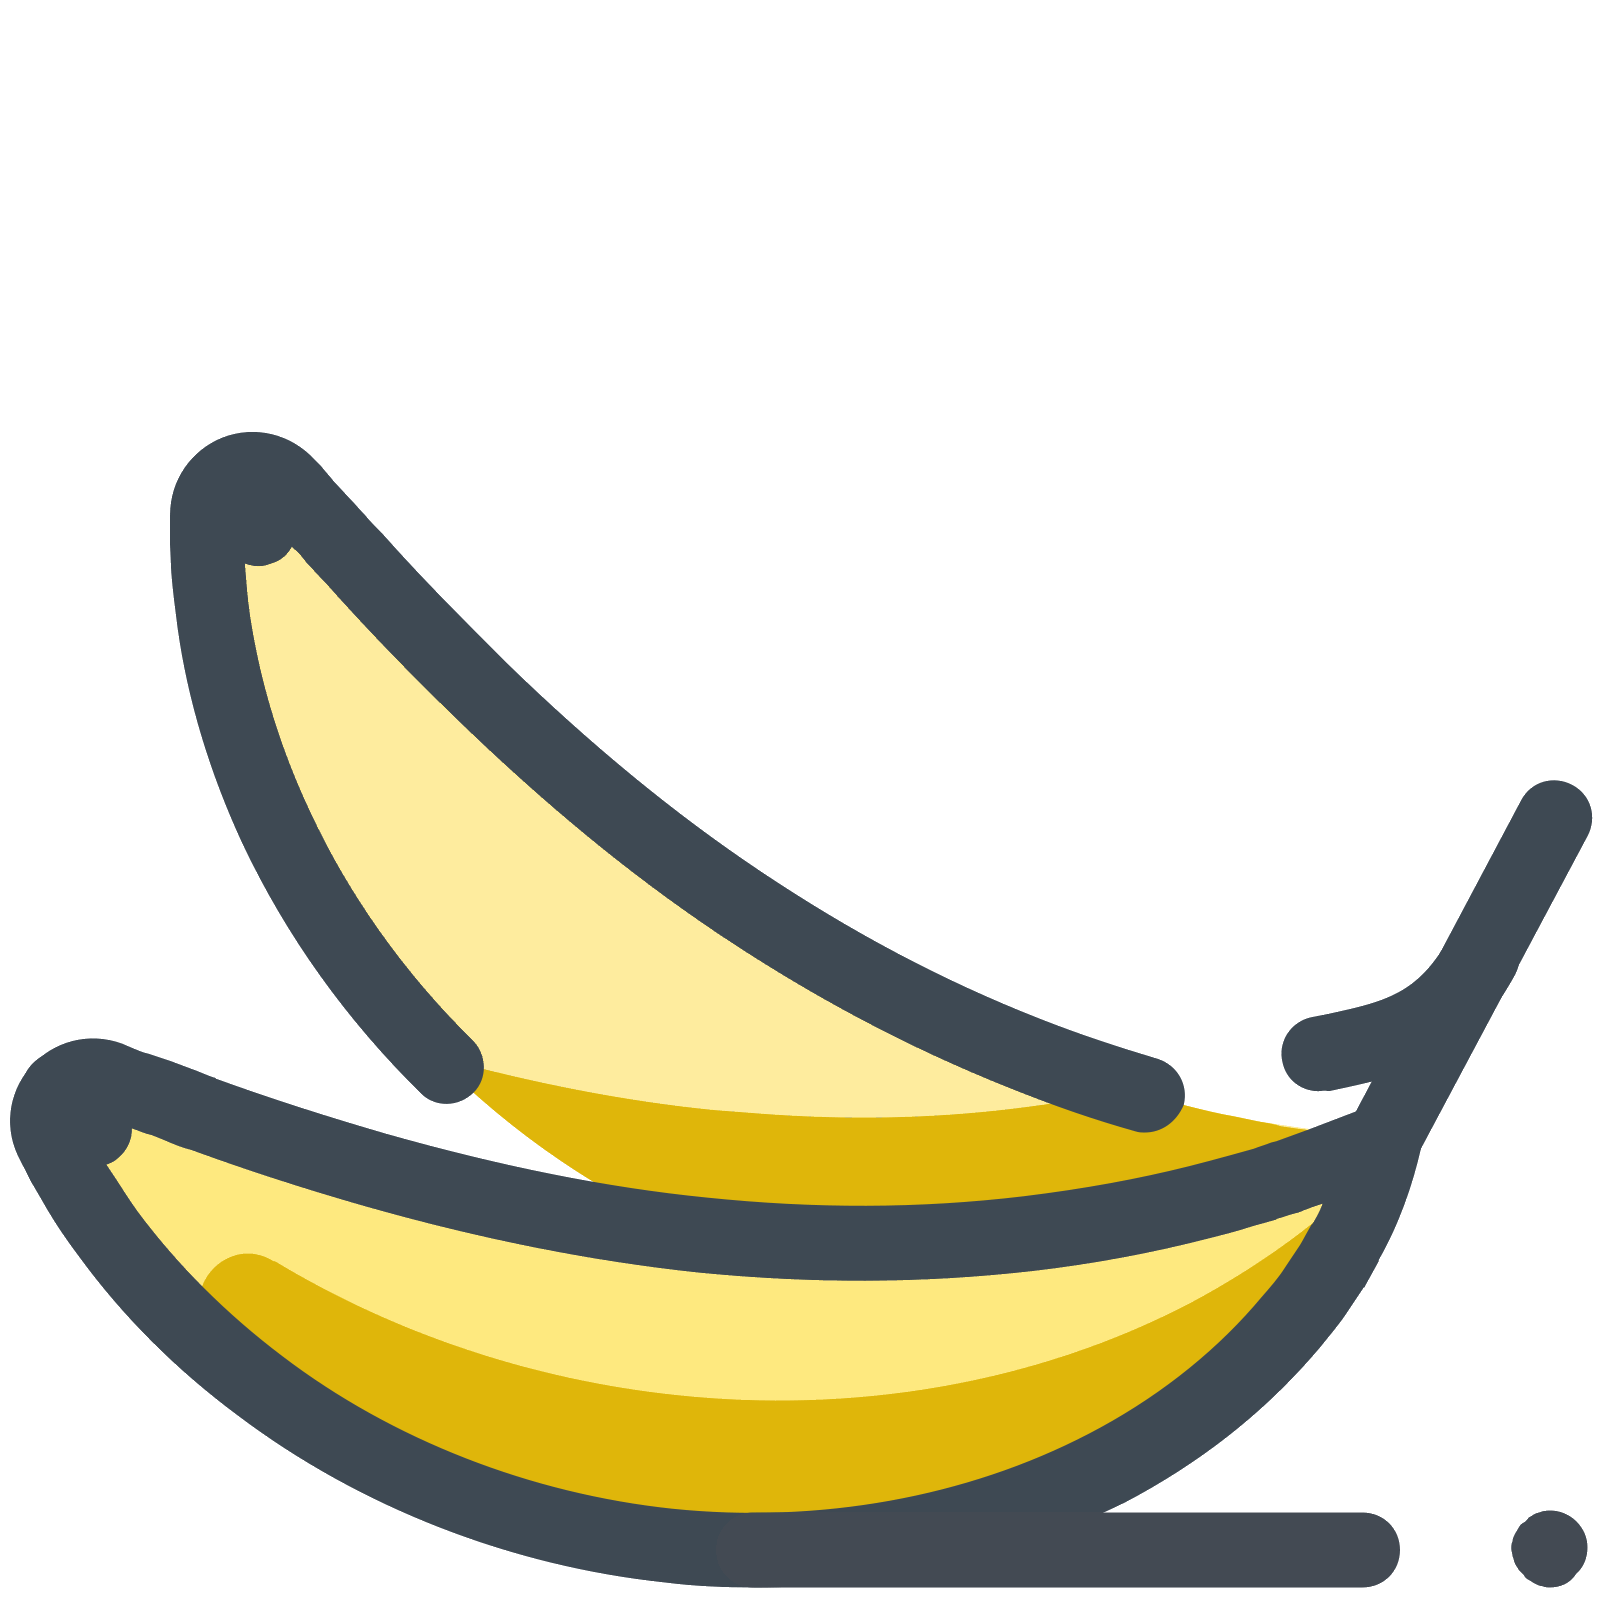 image freeuse library Banana icon best ideas. Bananas vector flat design